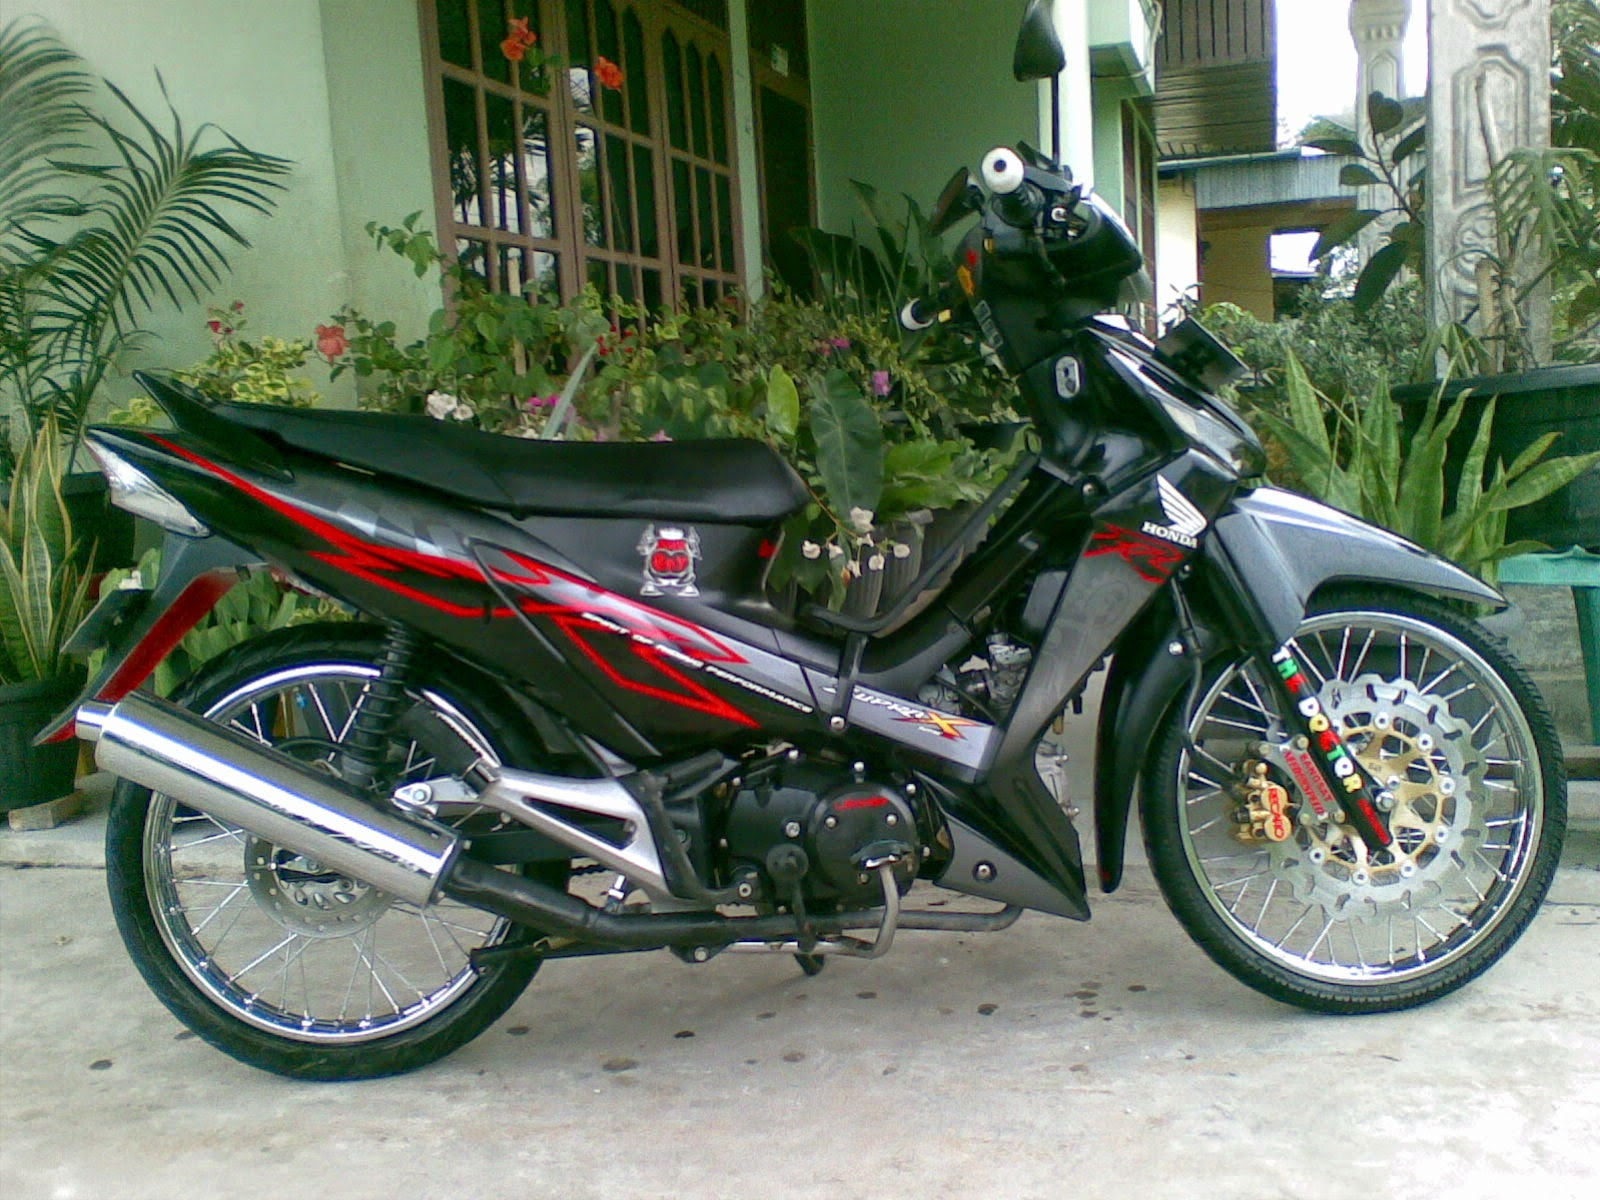 Download Koleksi Modifikasi Motor Supra X 125 Lama Terbaru Palm